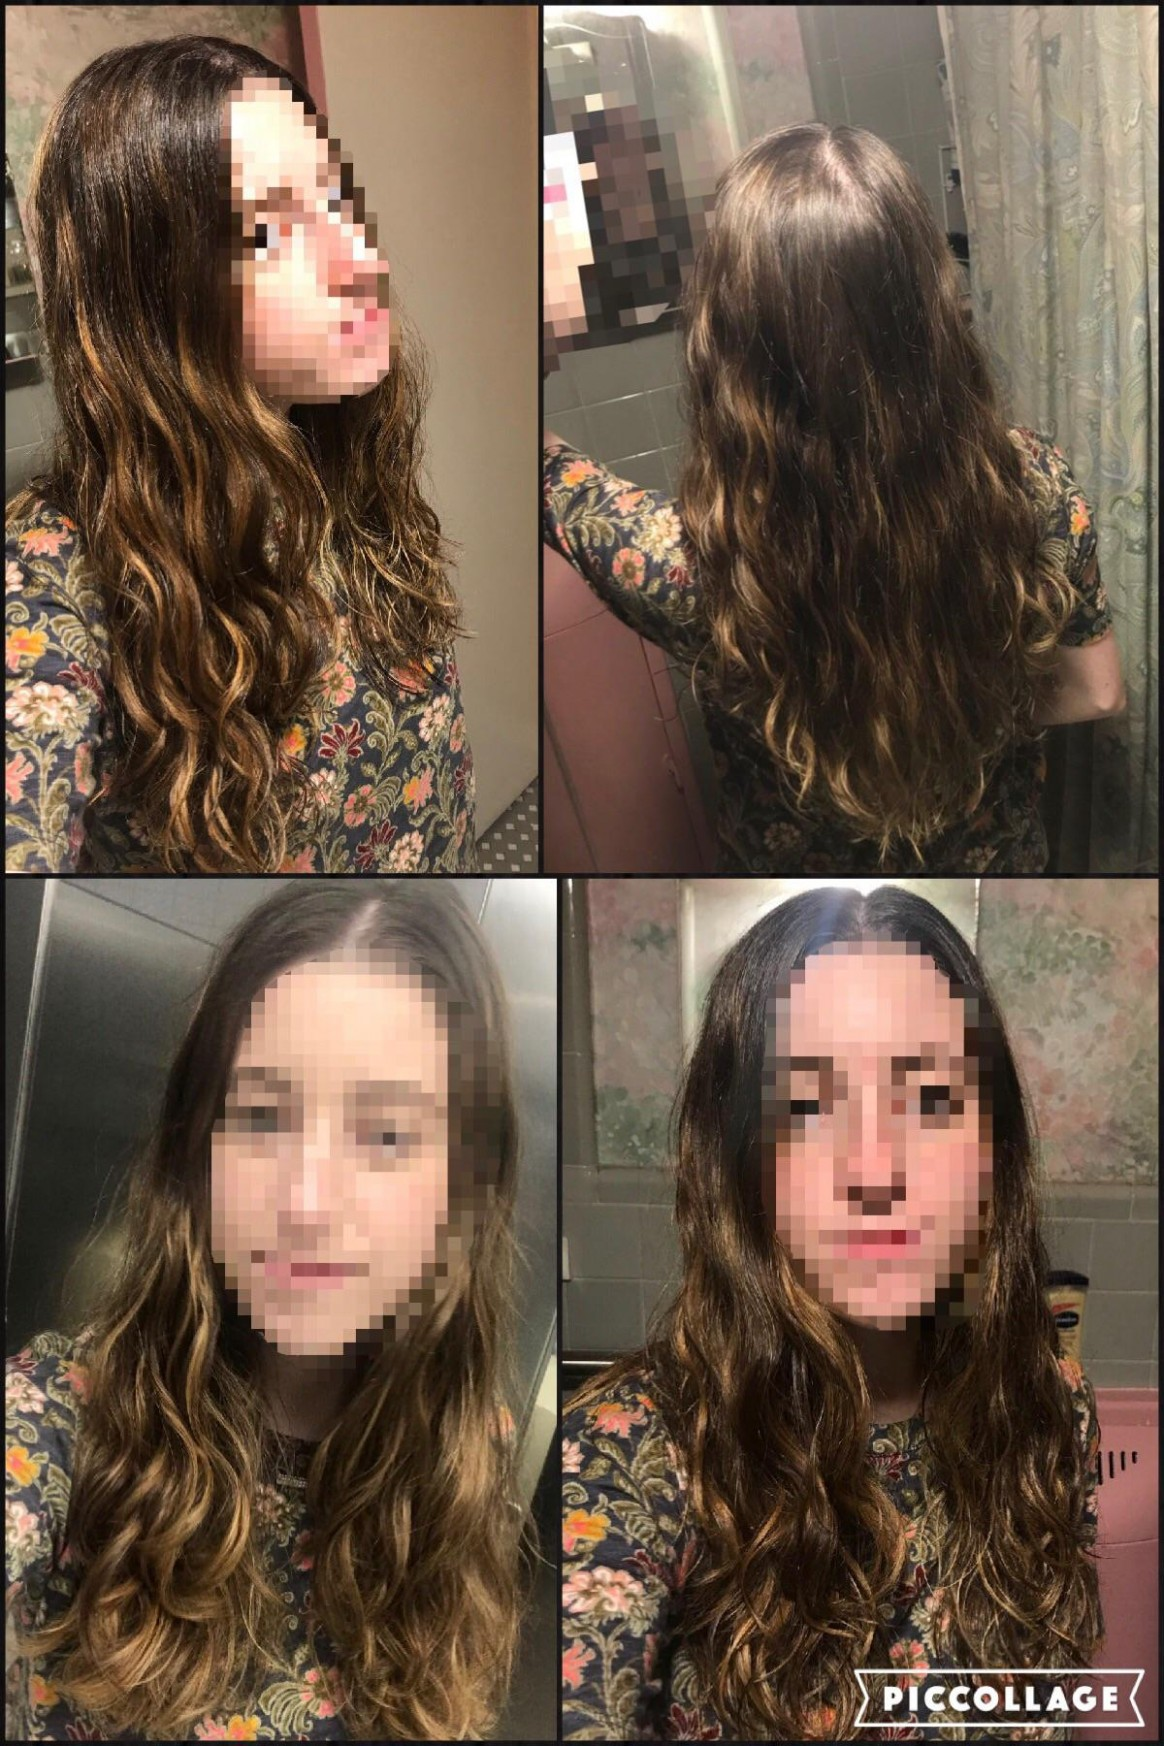 NEW CG! Do I Have 10C Hair? Suggestions For A Haircut? Thinking Haircuts For 2C Hair